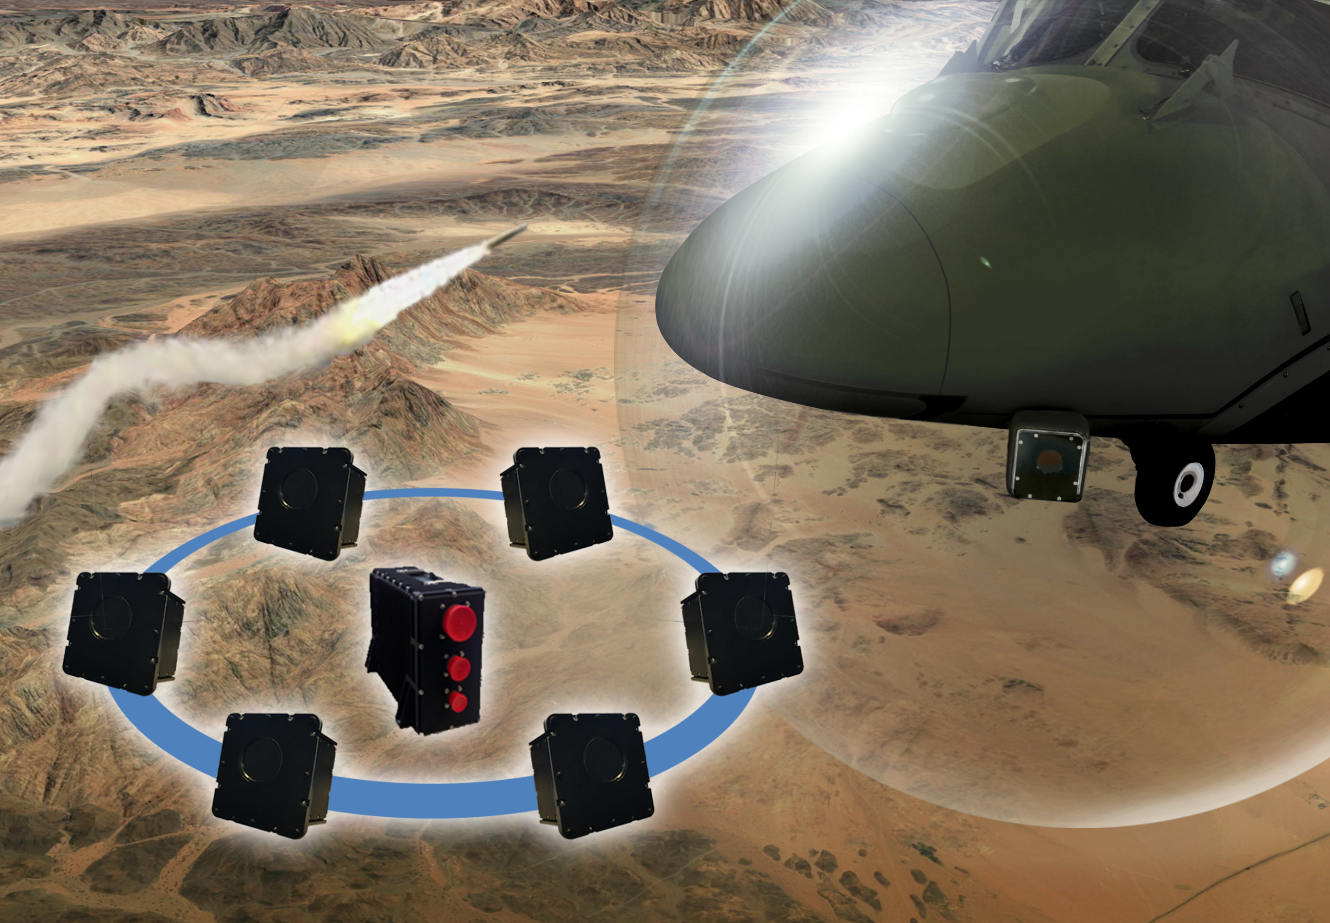 Paris Air Show 2019: Leonardo will exhibit its brand-new Multiple Aperture Infra-Red (MAIR) missile warning system.